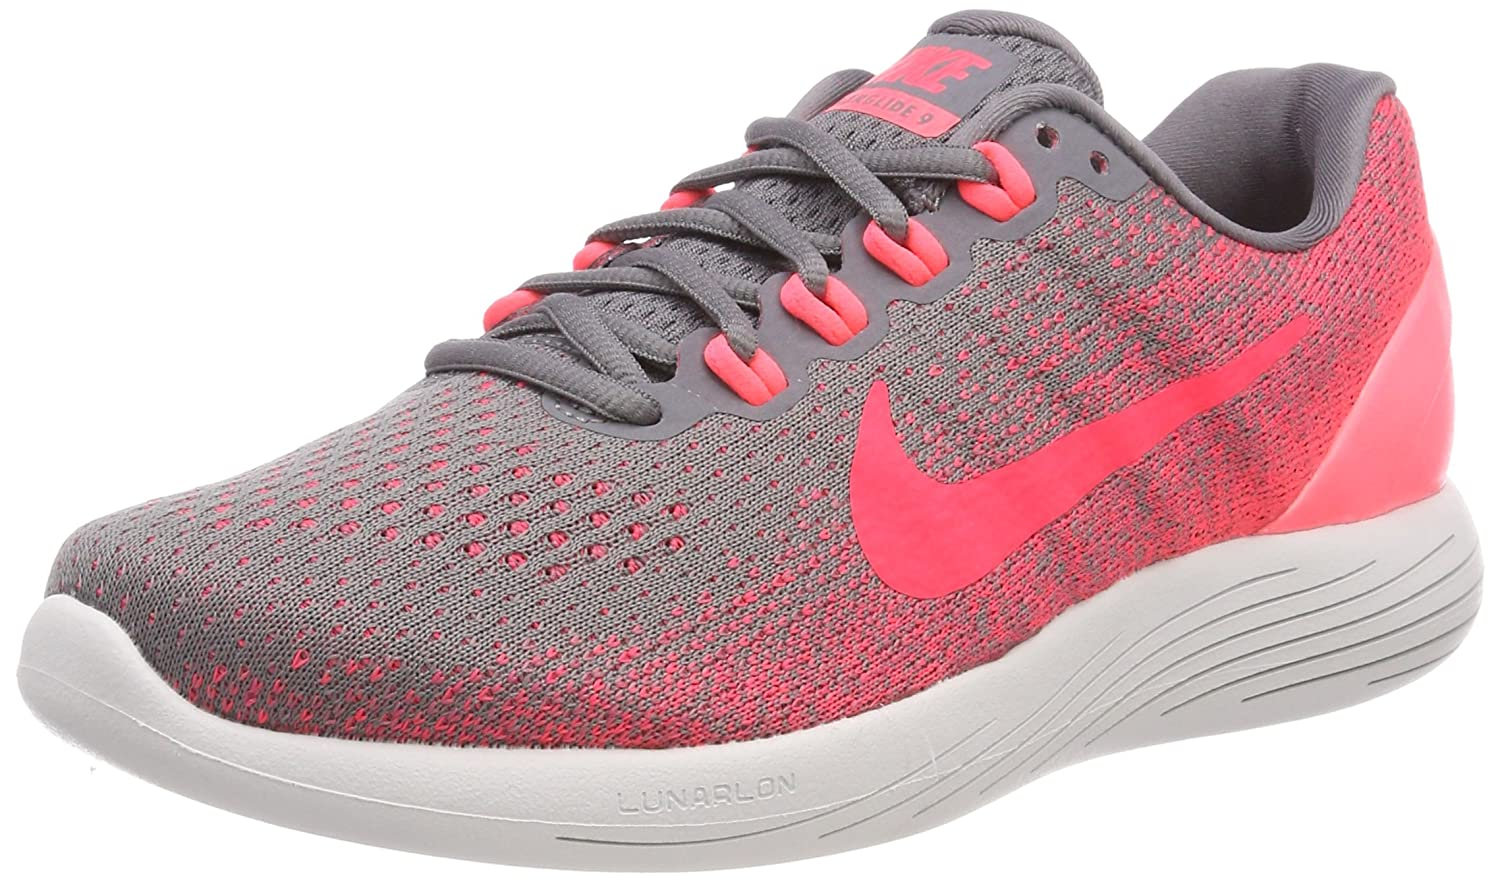 NIKE Women's Lunarglide 9 Running Shoe B071K7B7C4 8 B(M) US|Gunsmoke/Solar Red/Hot Punch/Vast Grey